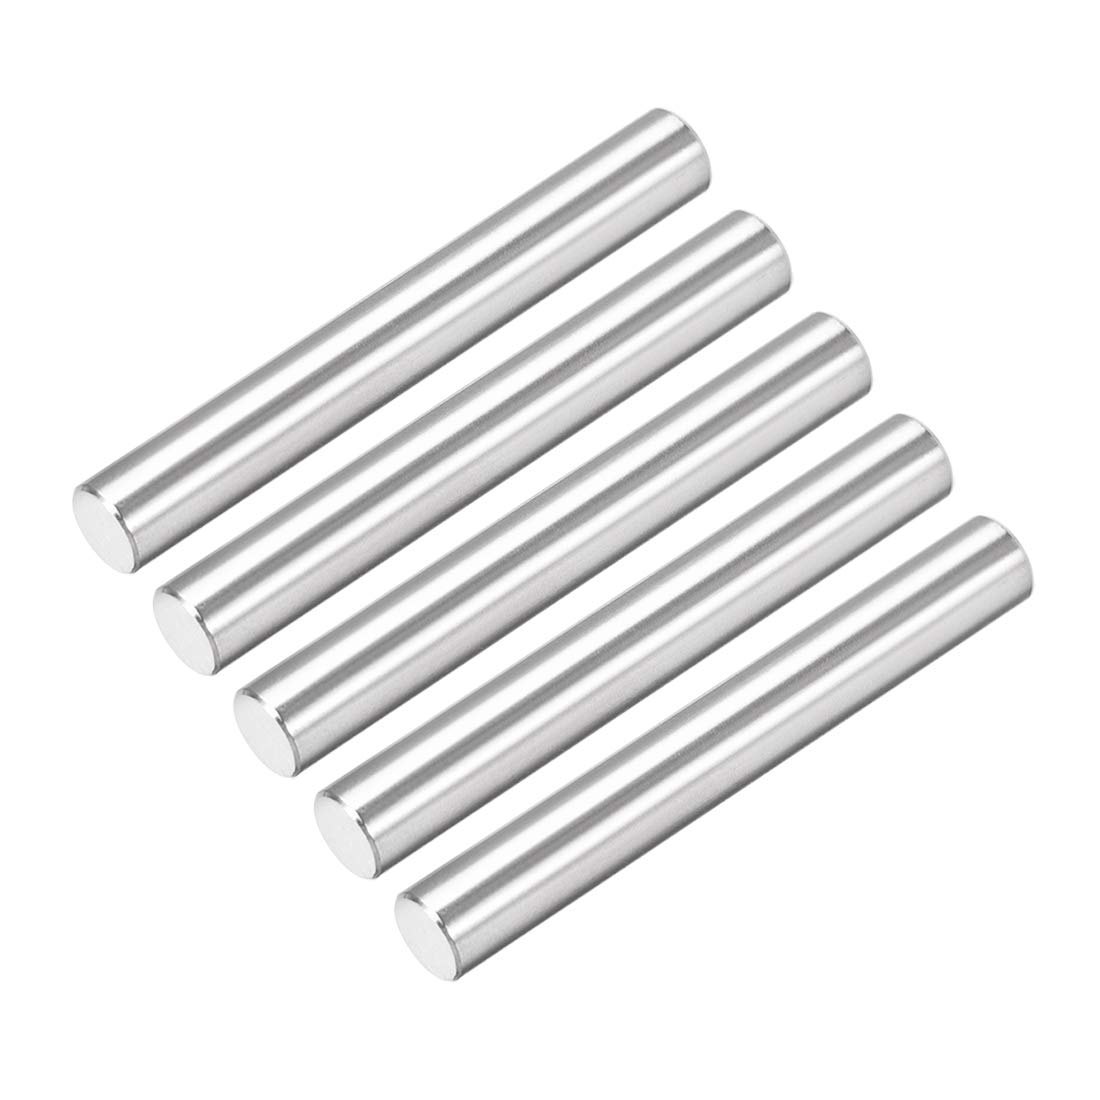 uxcell 5Pcs 6mm X 45mm Dowel Pin 304 Stainless Steel Cylindrical Shelf Support Pin Fasten Elements Silver Tone